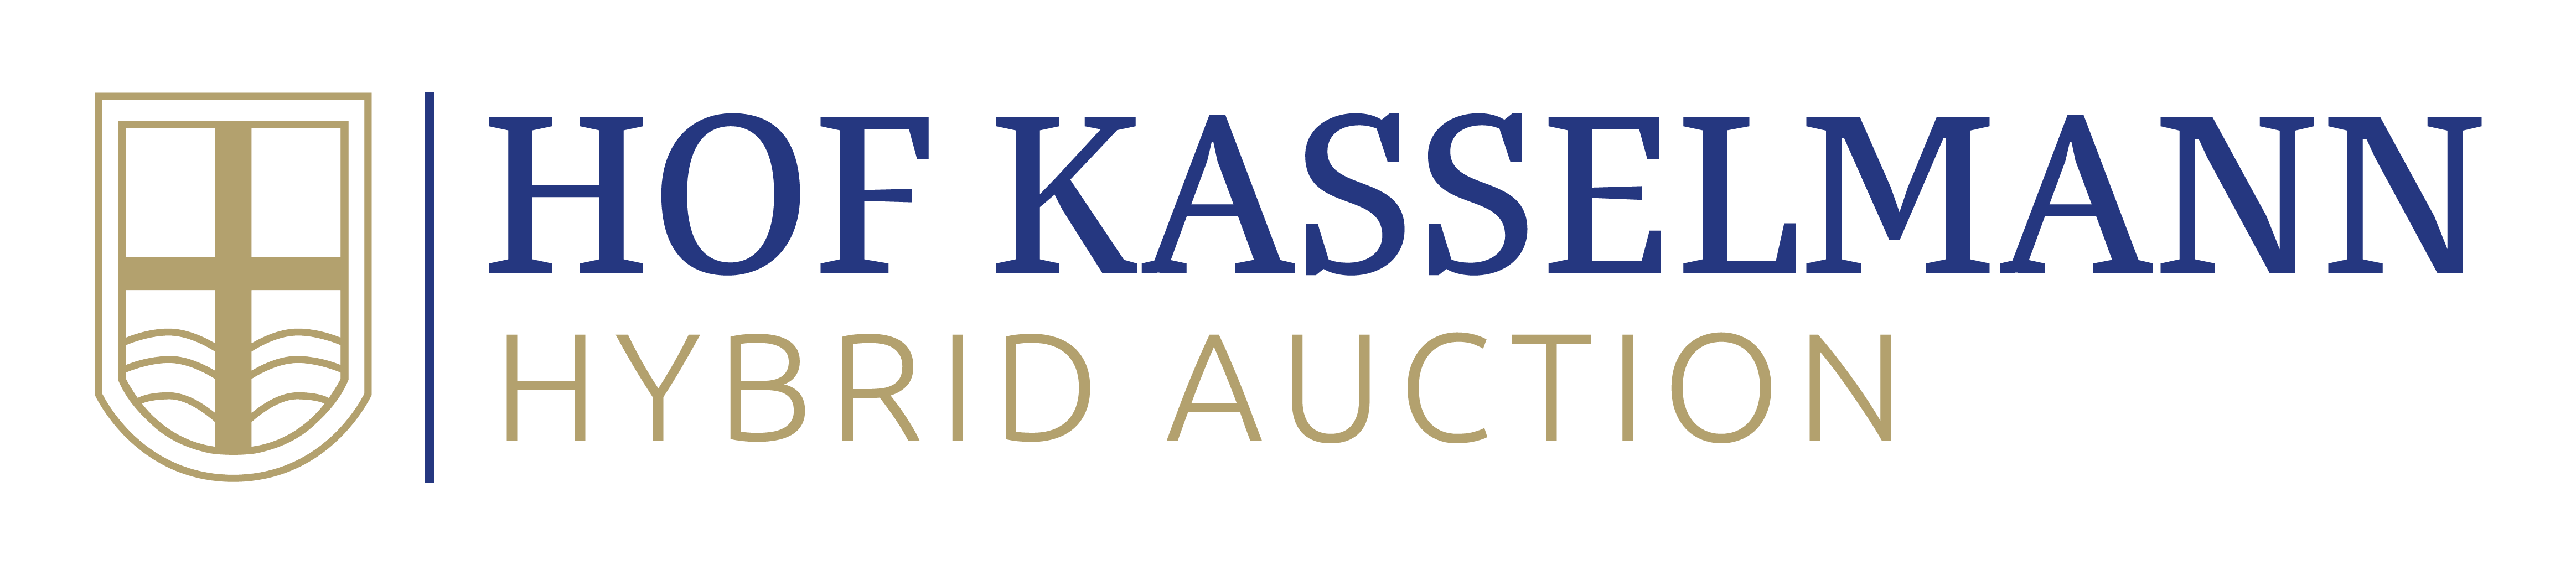 Hof Kasselmann Hybrid Auction